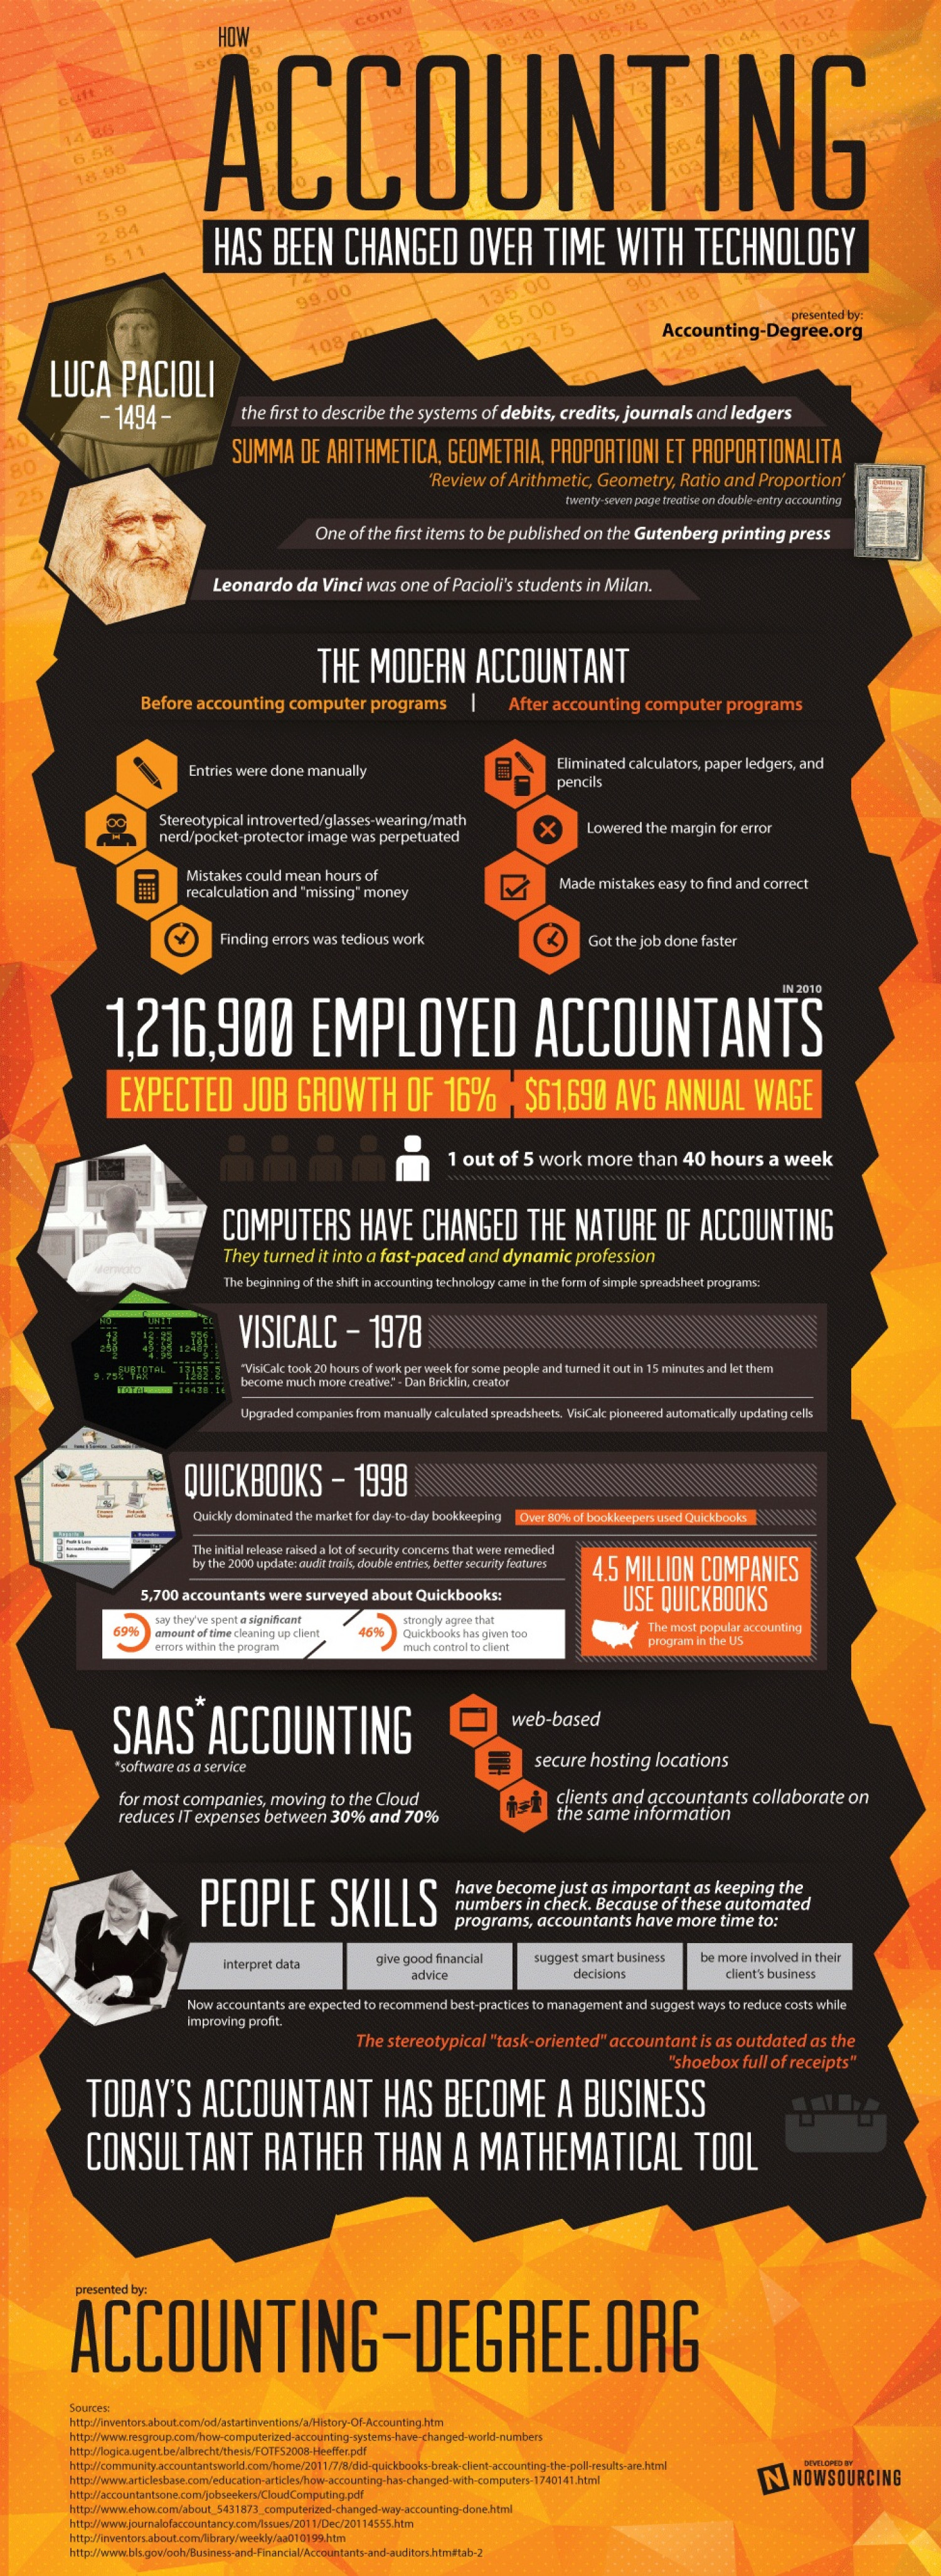 How Accounting has been Changed Over Time with Technology Infographic